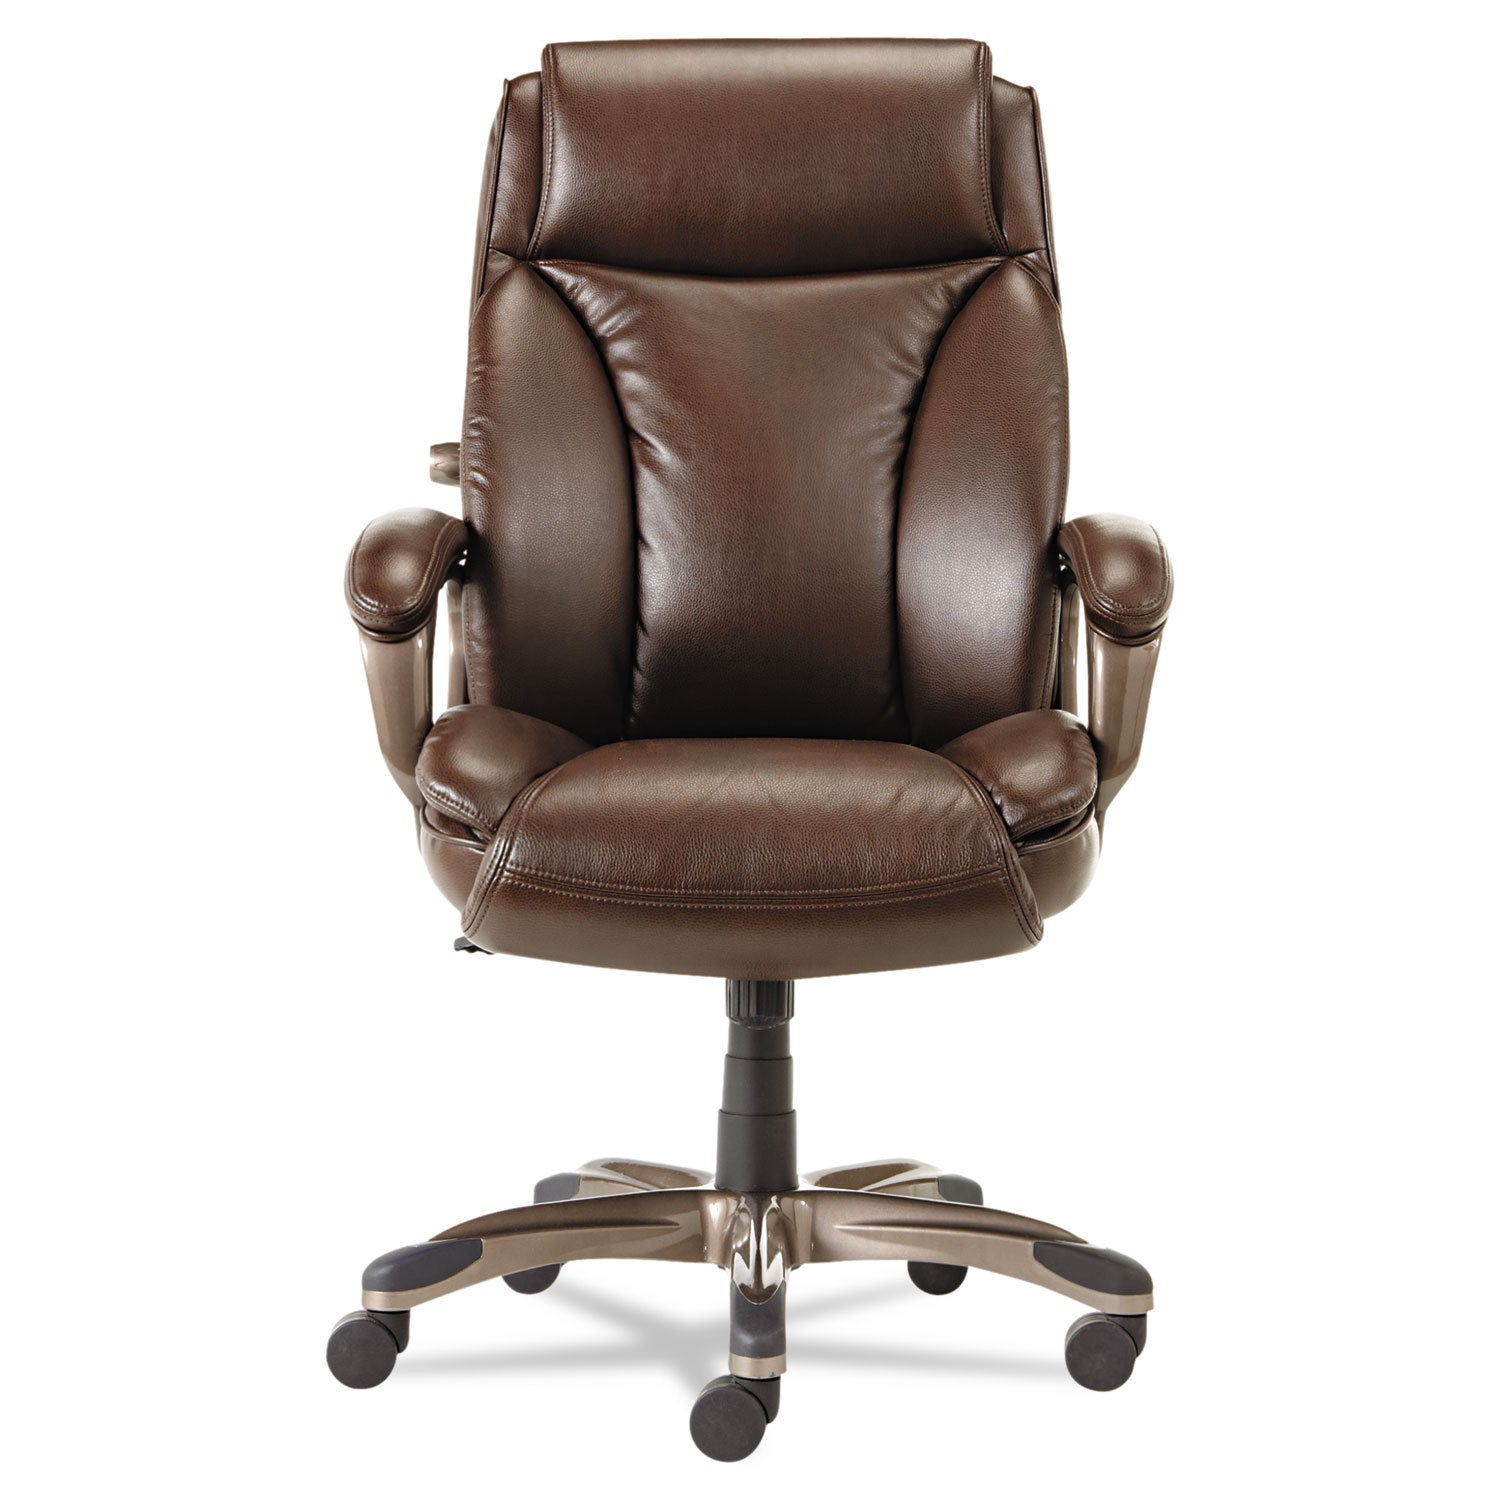 high back leather chairs. Alera Veon Series Brown Executive High-Back Leather Chair W/ Coil Spring Cushioning - Free Shipping Today Overstock 17415718 High Back Chairs